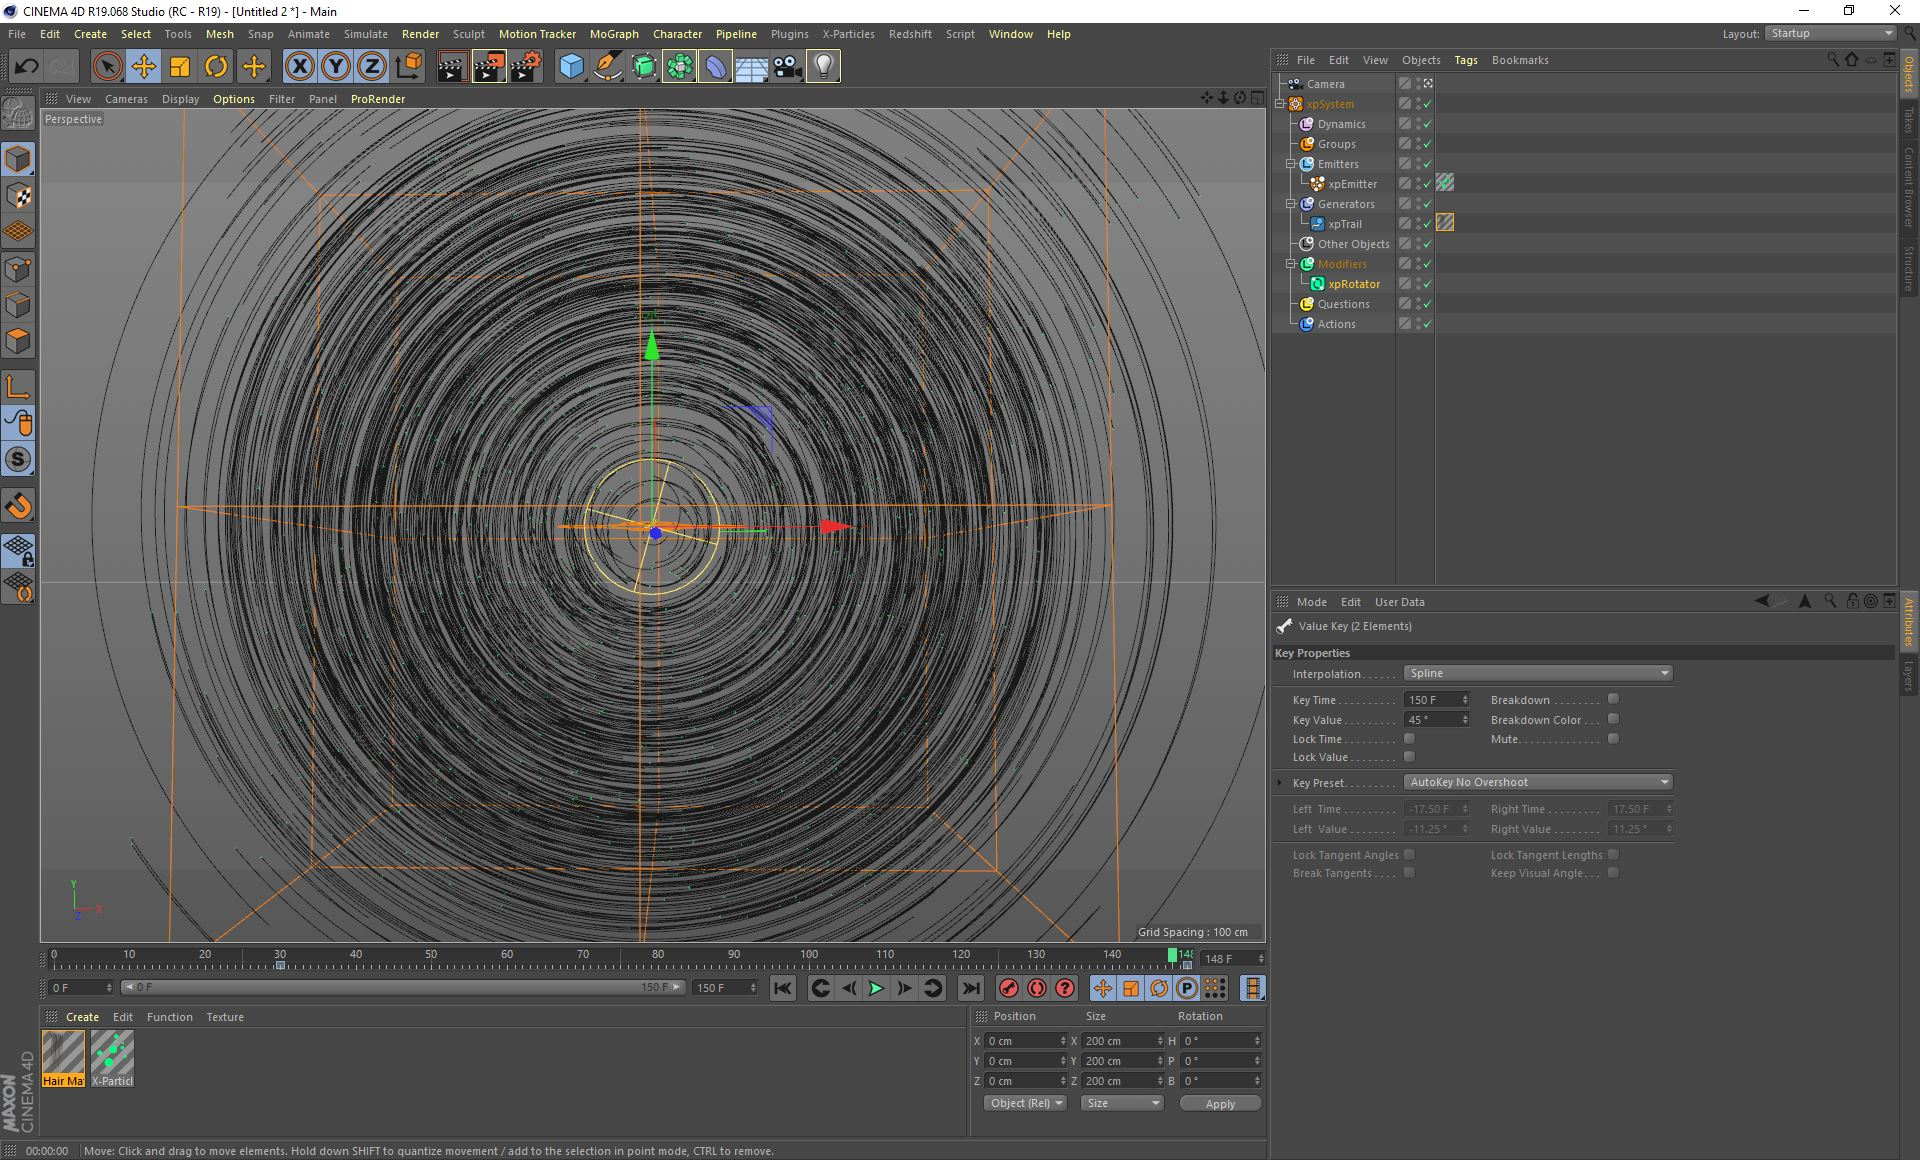 Creating star trails with X-Particles in Cinema 4D